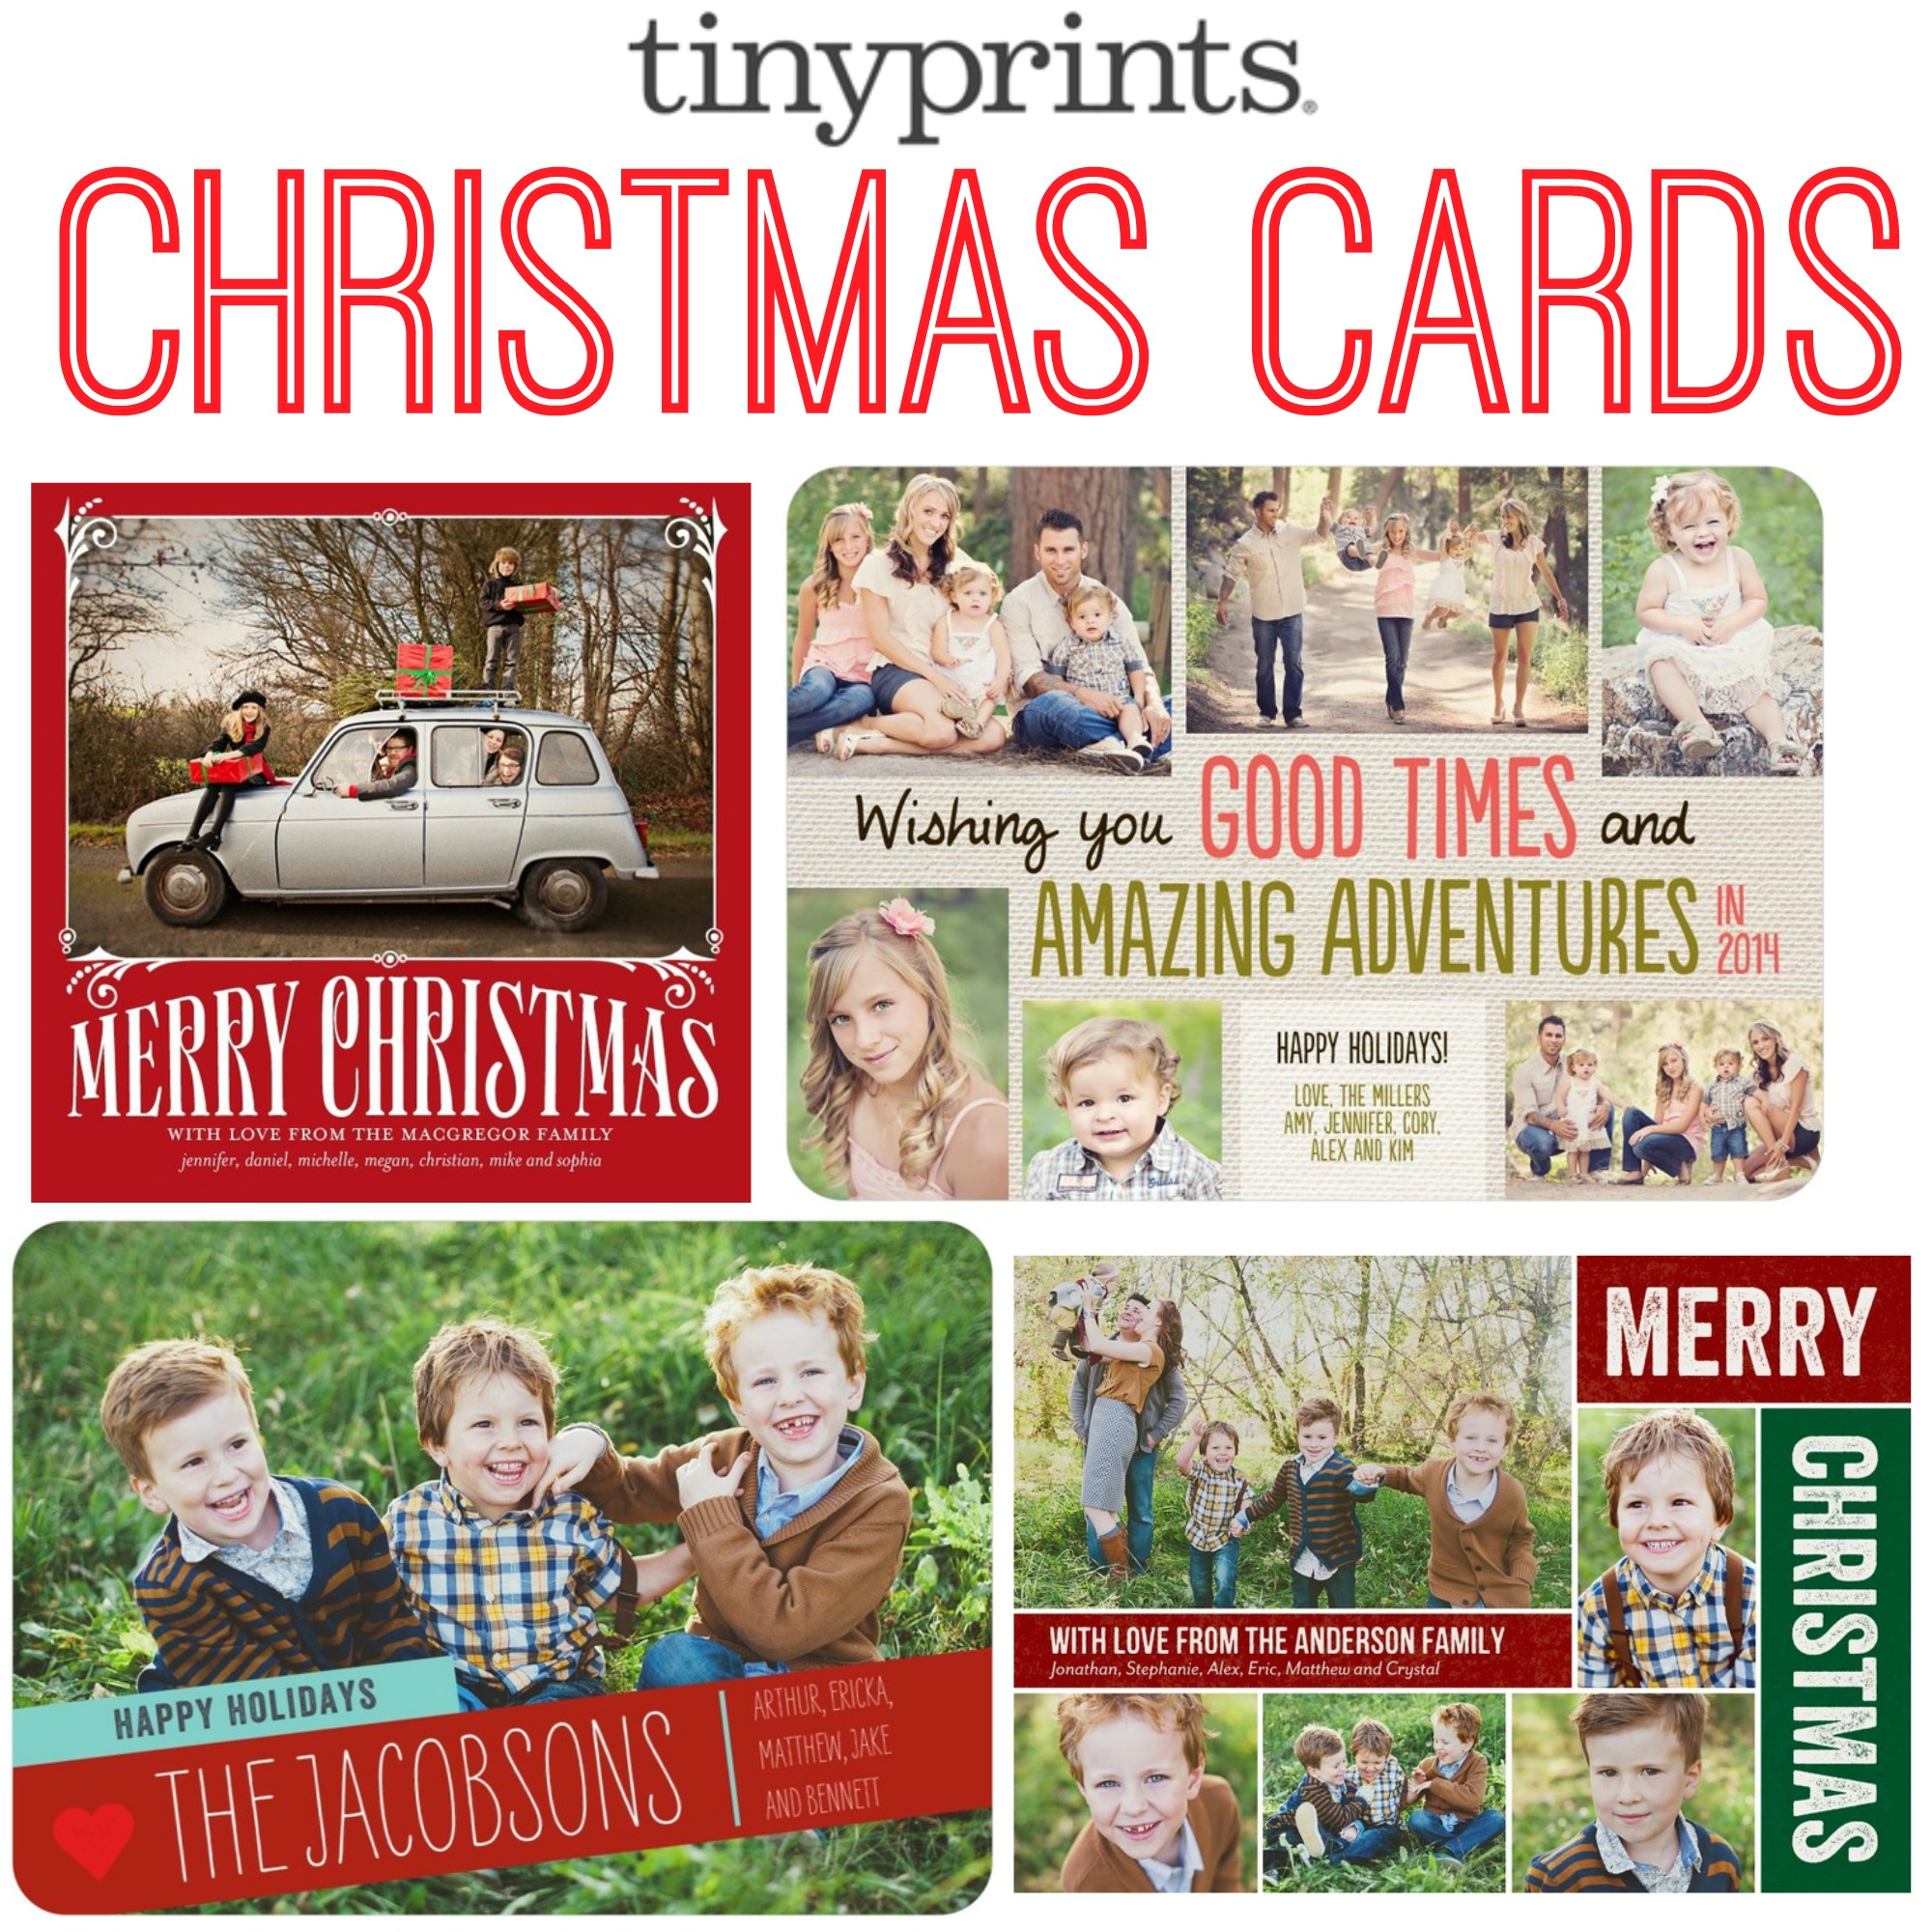 Charmful Tiny Prints Cards Spread Holiday Cheer Tiny Gift Code Giveaway Tiny Prints Photo Cards Tiny Prints Fed Cards cards Tiny Prints Christmas Cards